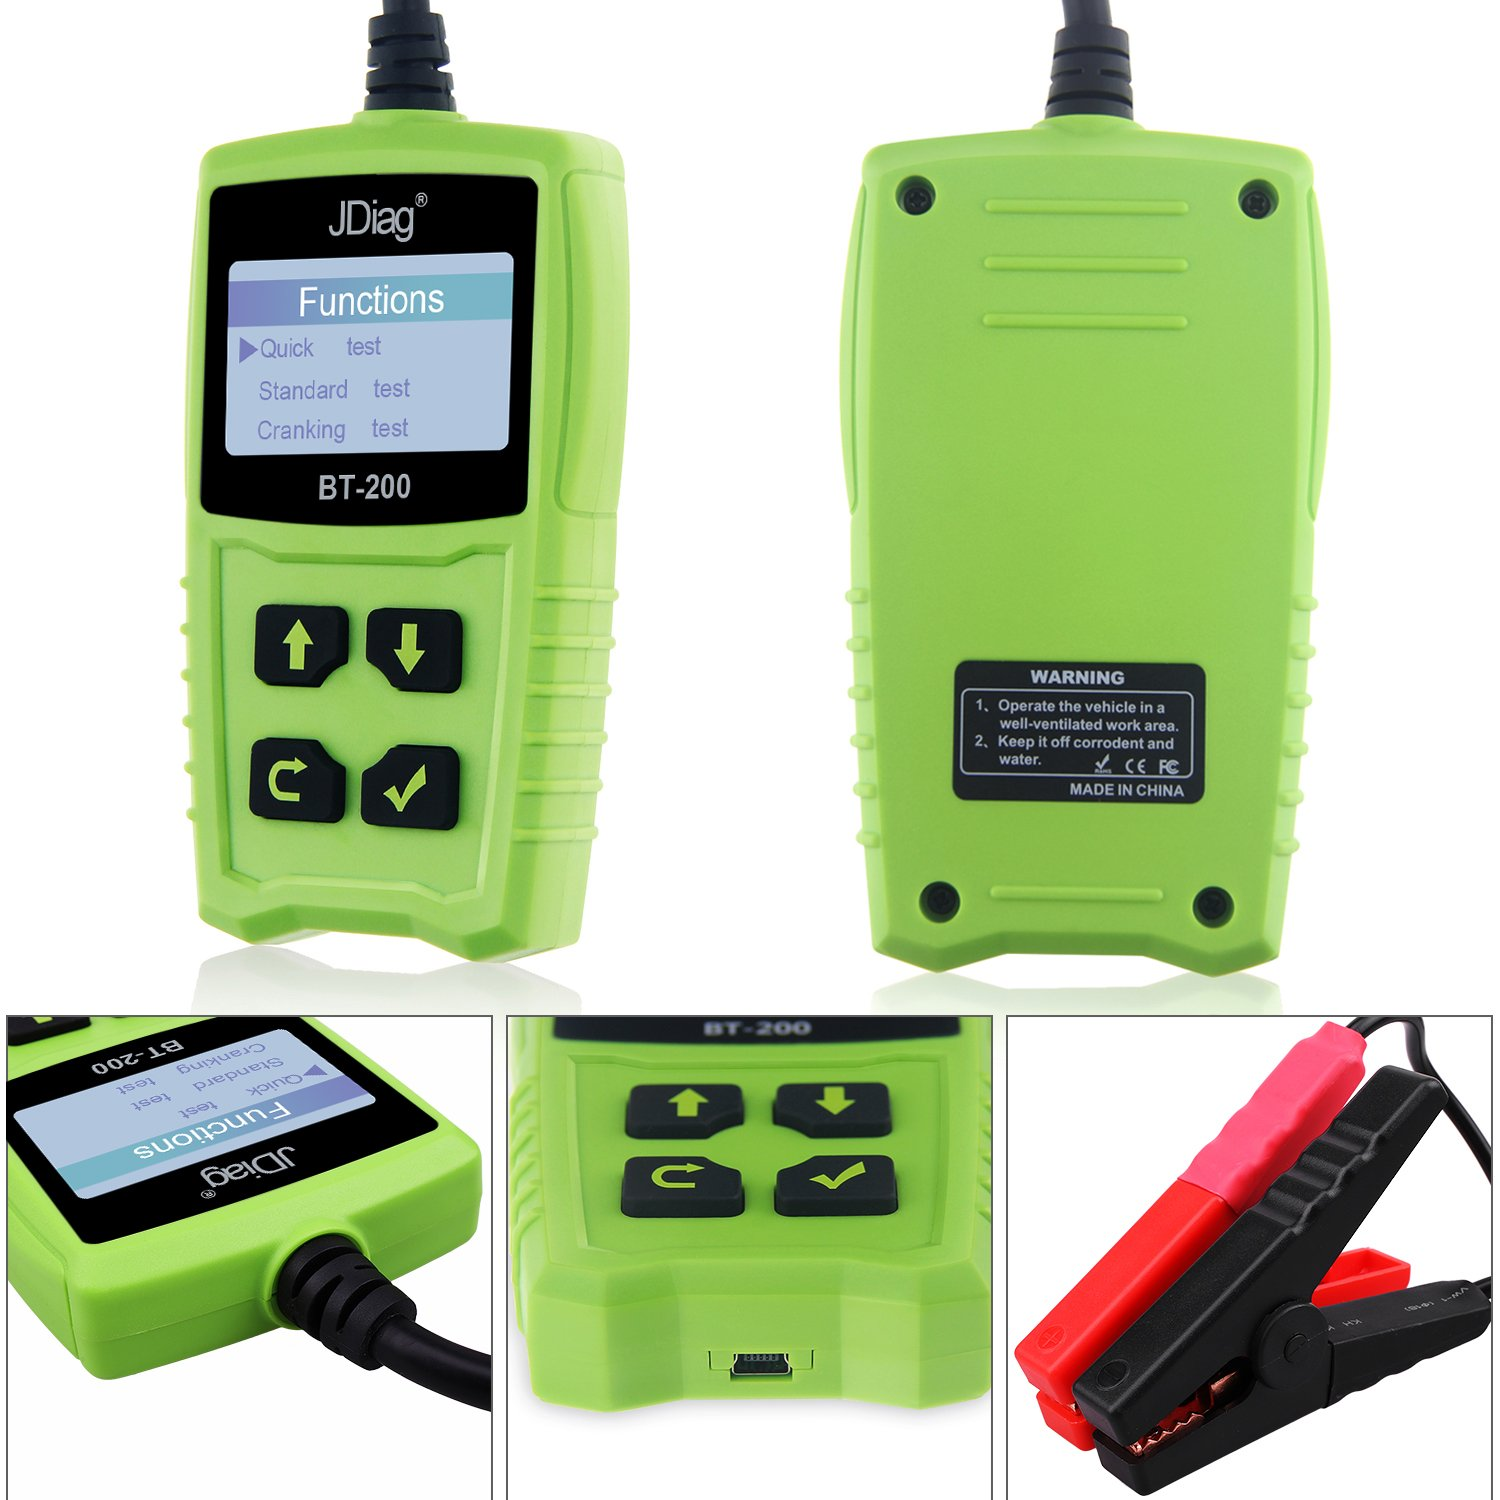 Car Battery Tester 12V 100-1700 CCA 100AH BT200 Automotive Load Battery Tester Digital Analyzer Bad Cell Test Tool VXDAS for Car/Boat/Motorcycle and More (Green) by VXDAS (Image #2)